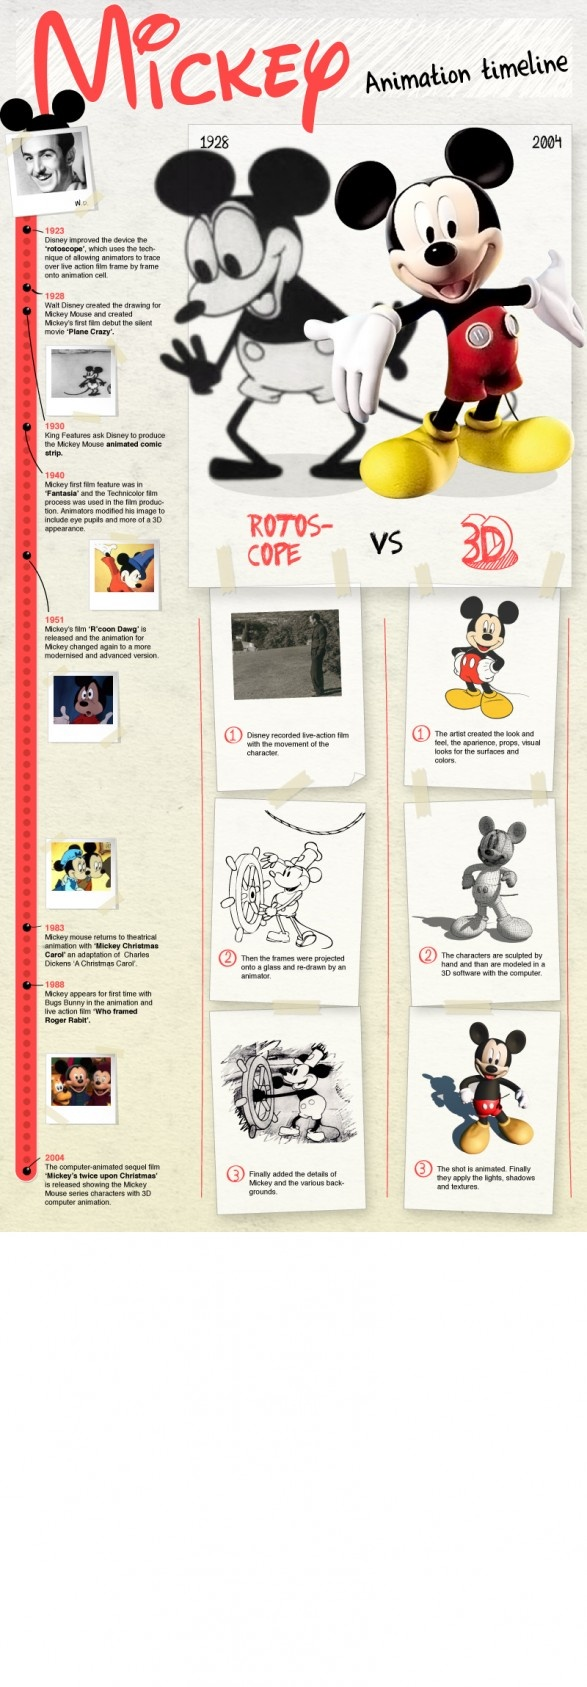 12 best [An] Animation images on Pinterest | Info graphics ...